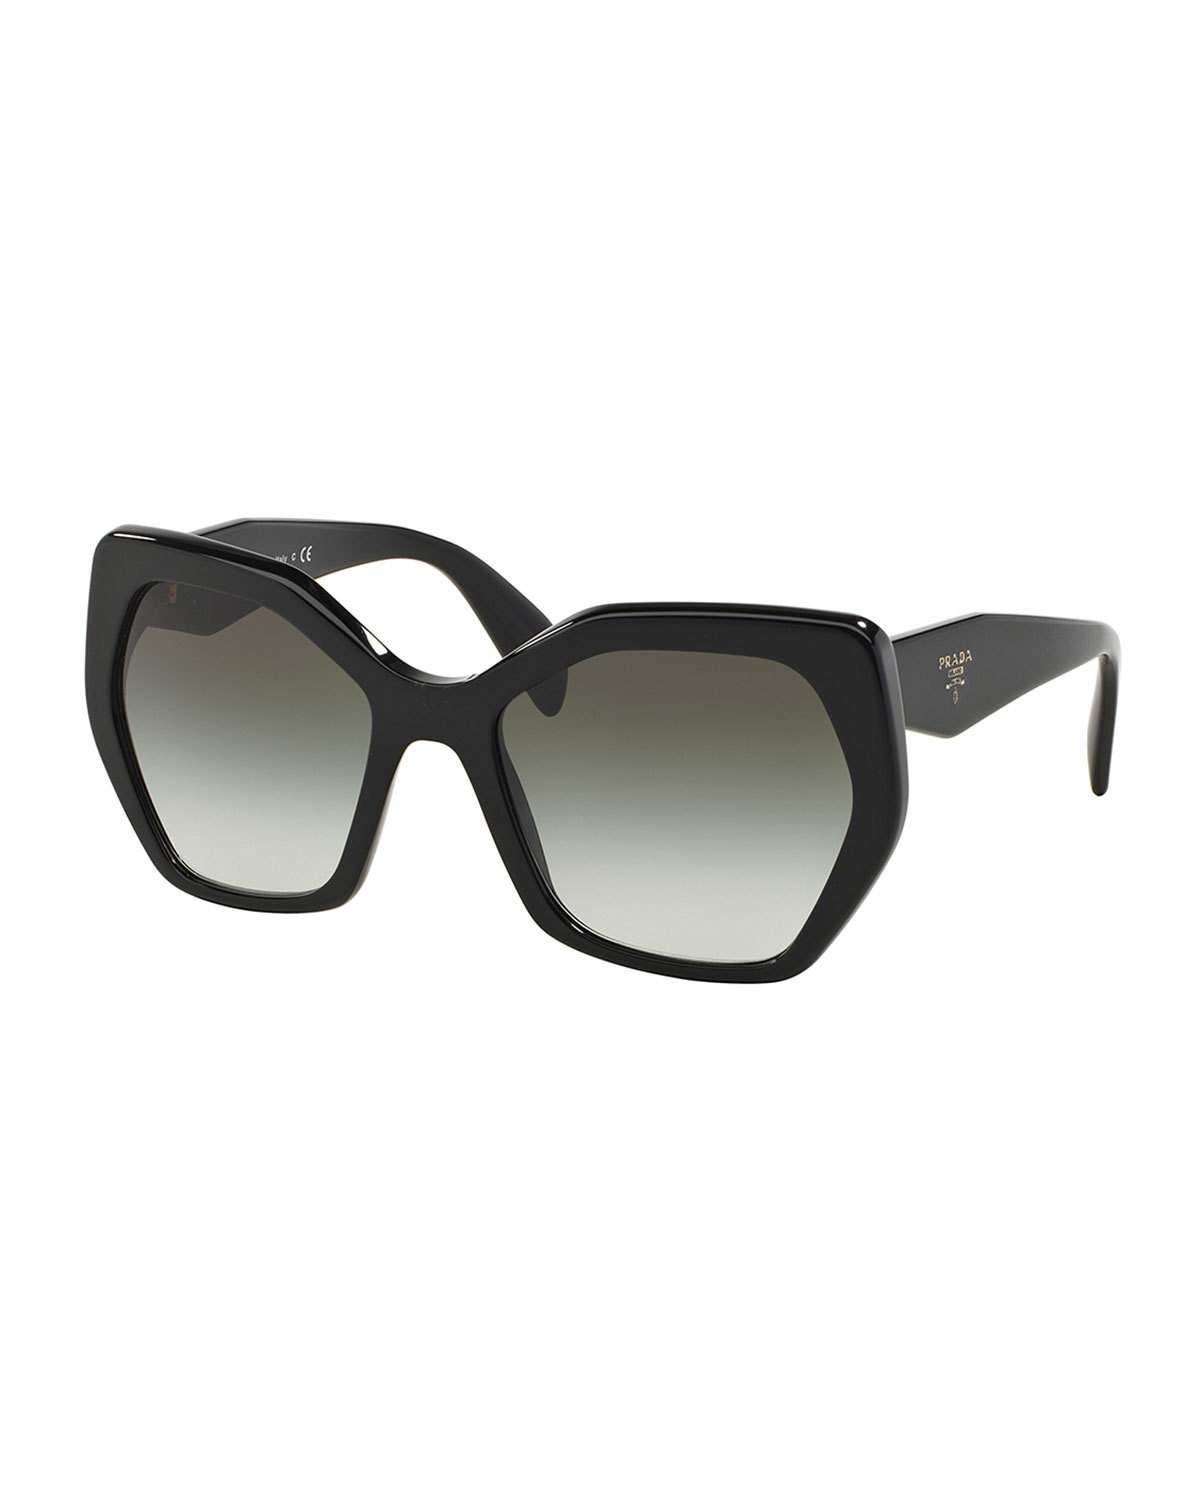 5f84bb5532 Heritage Angled Butterfly Sunglasses. Prada Heritage Angled Butterfly Sunglasses  Oversized ...